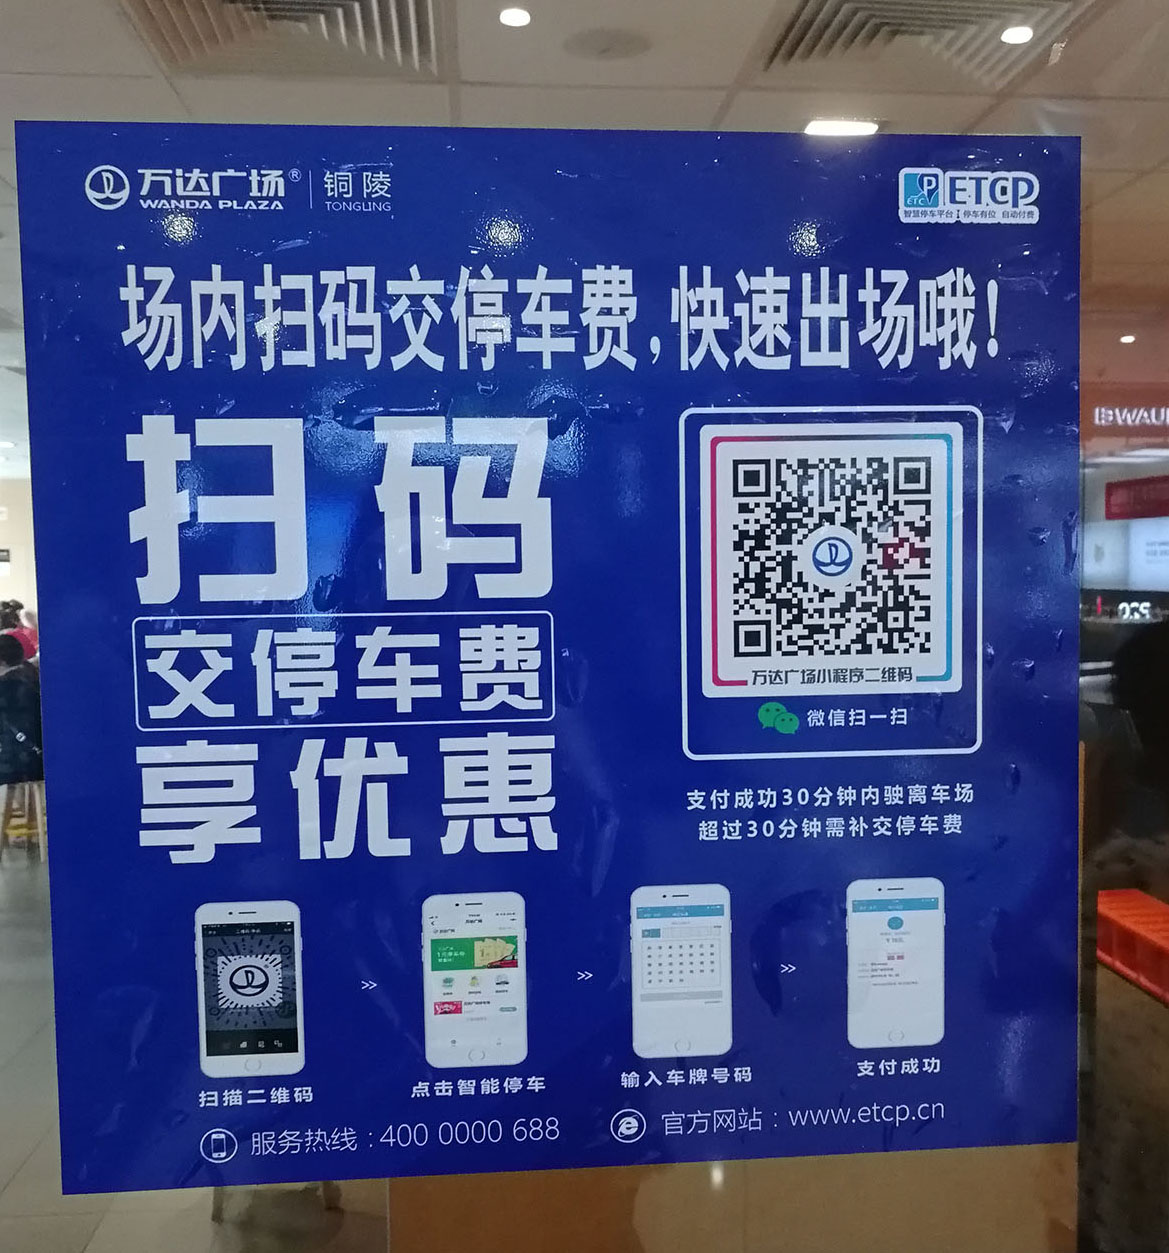 An advertisement for a mini program by Wanda Plaza (shopping mall) to help users prepay their parking fee